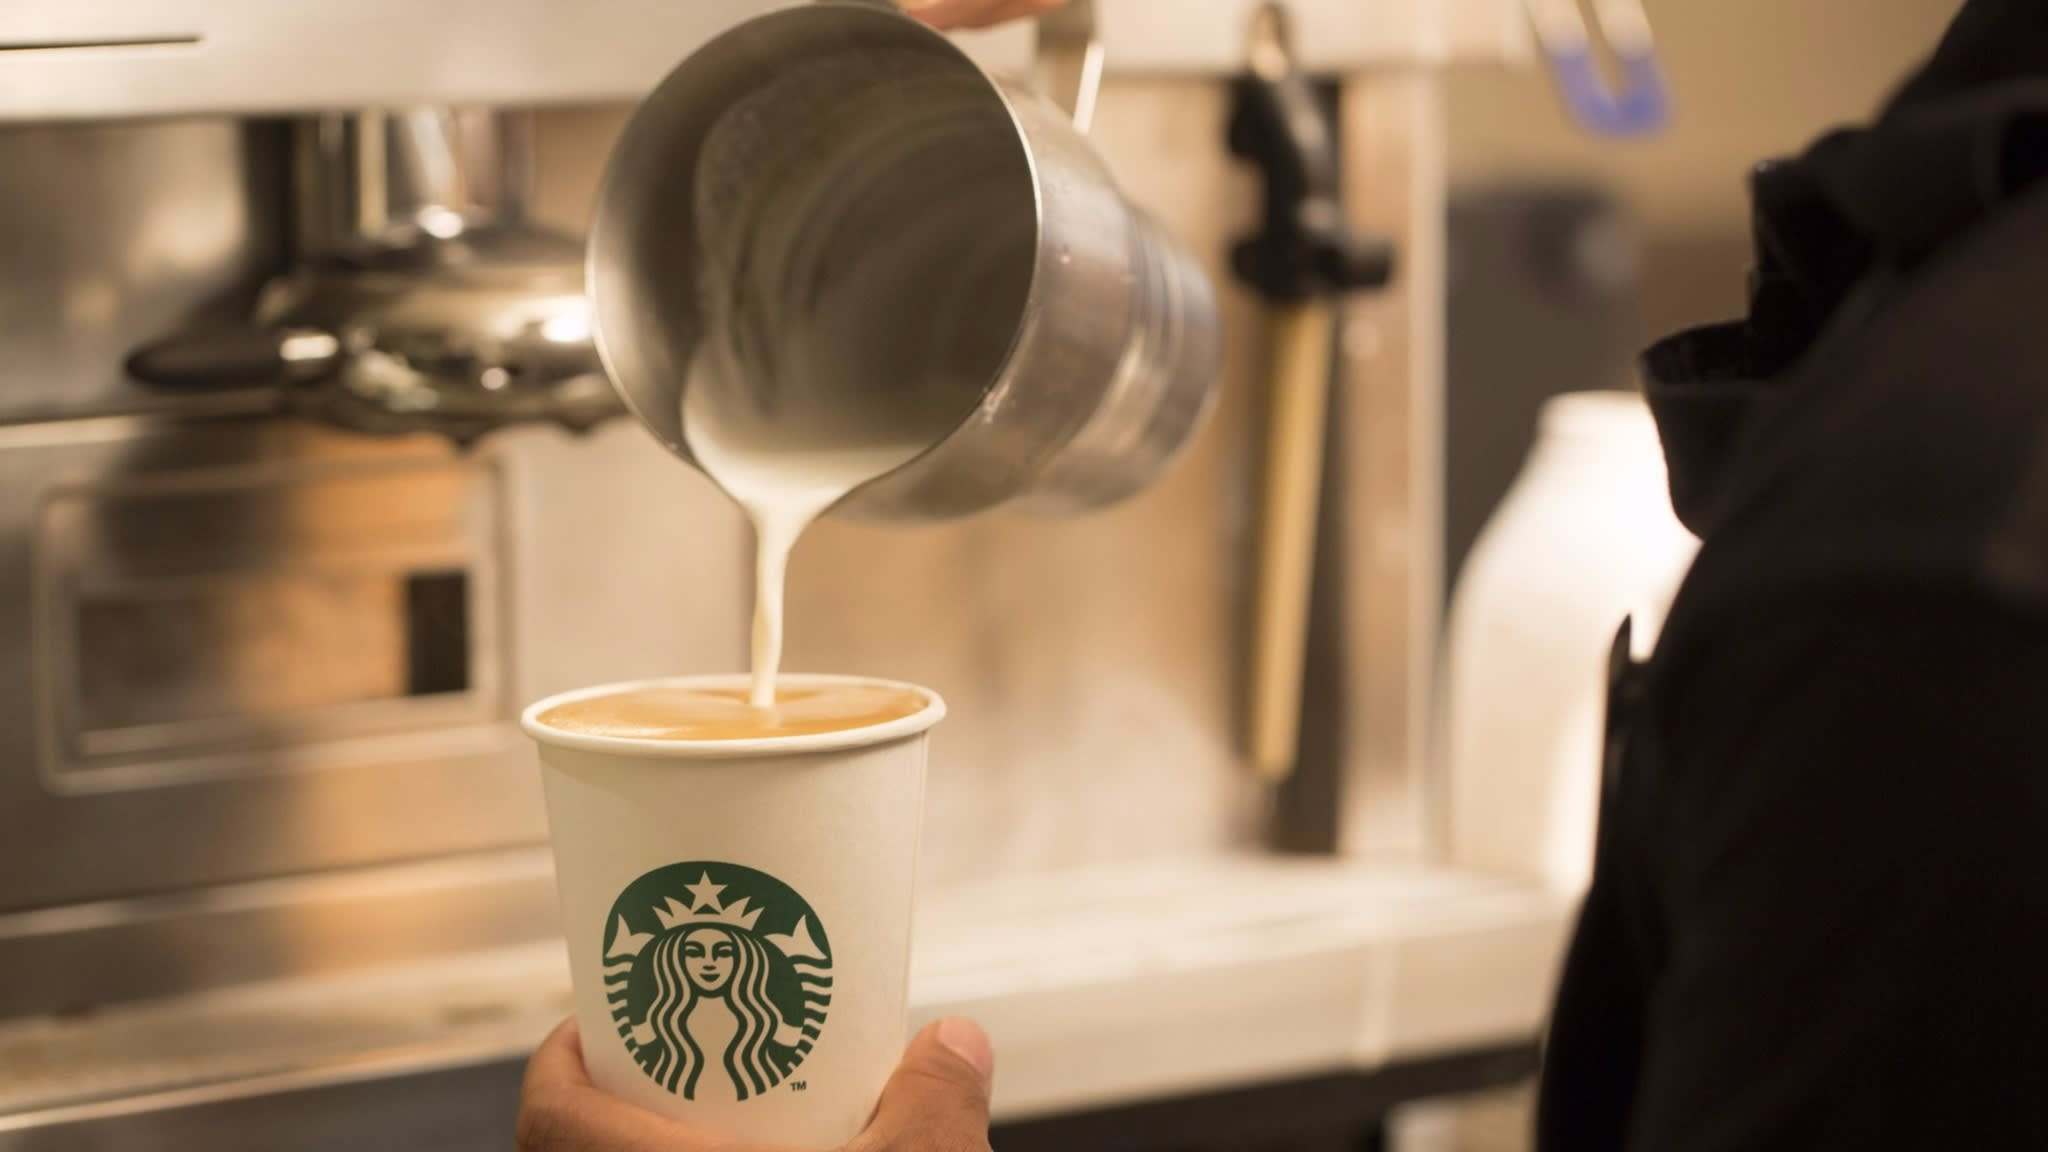 The de-monetisation of the economy started with coffee | FT